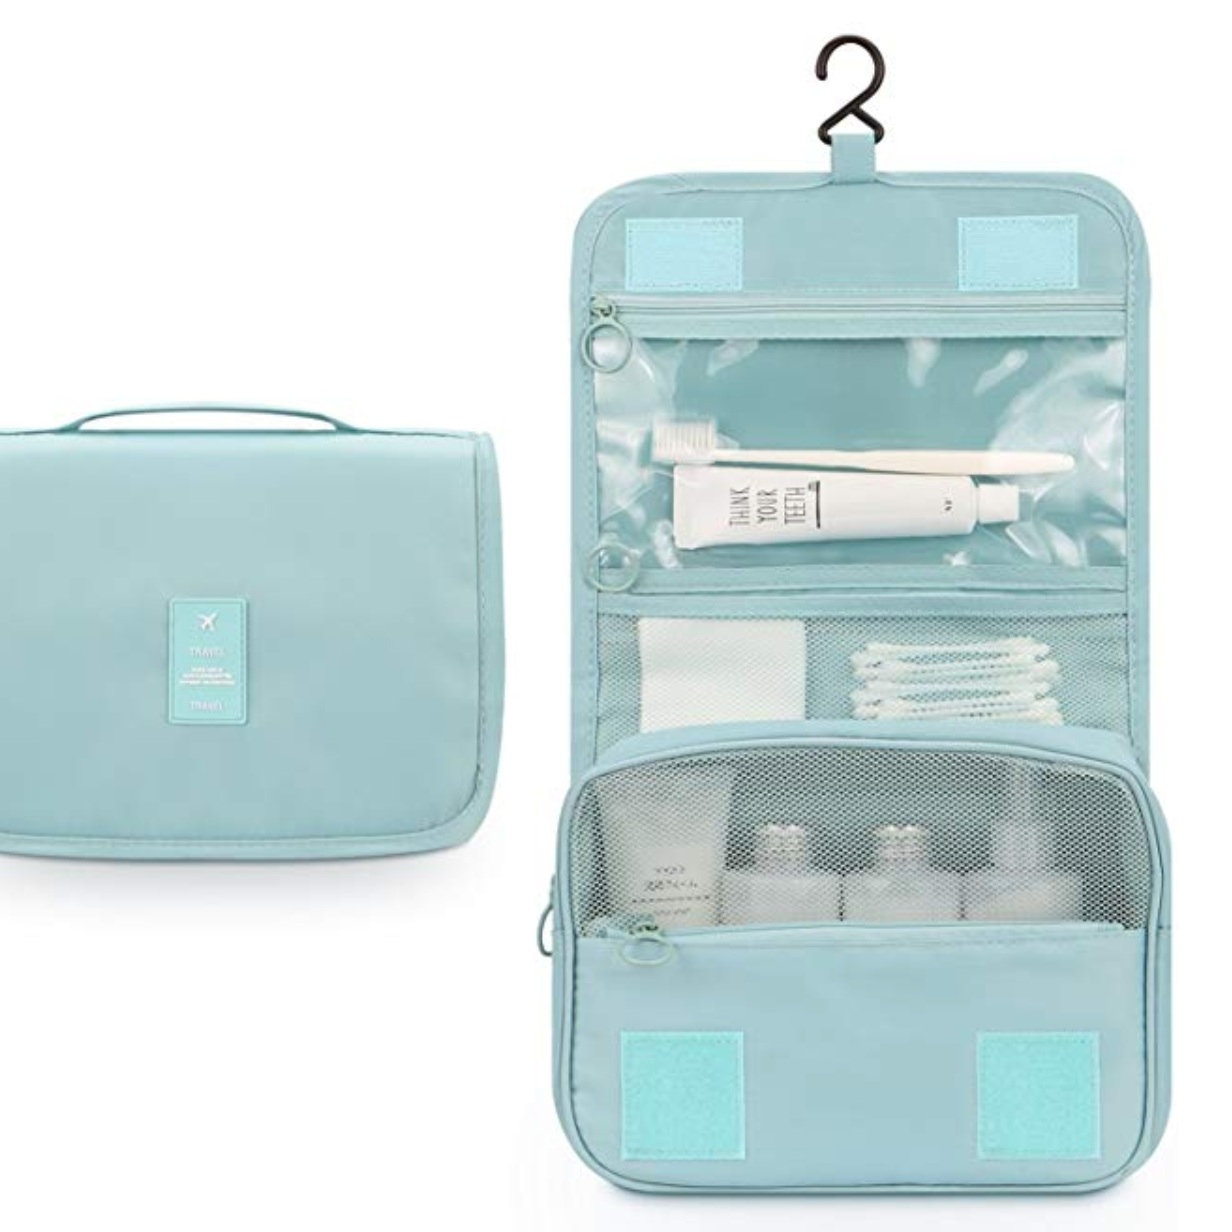 Amazon sells a variety of toiletries bags just like  this one .